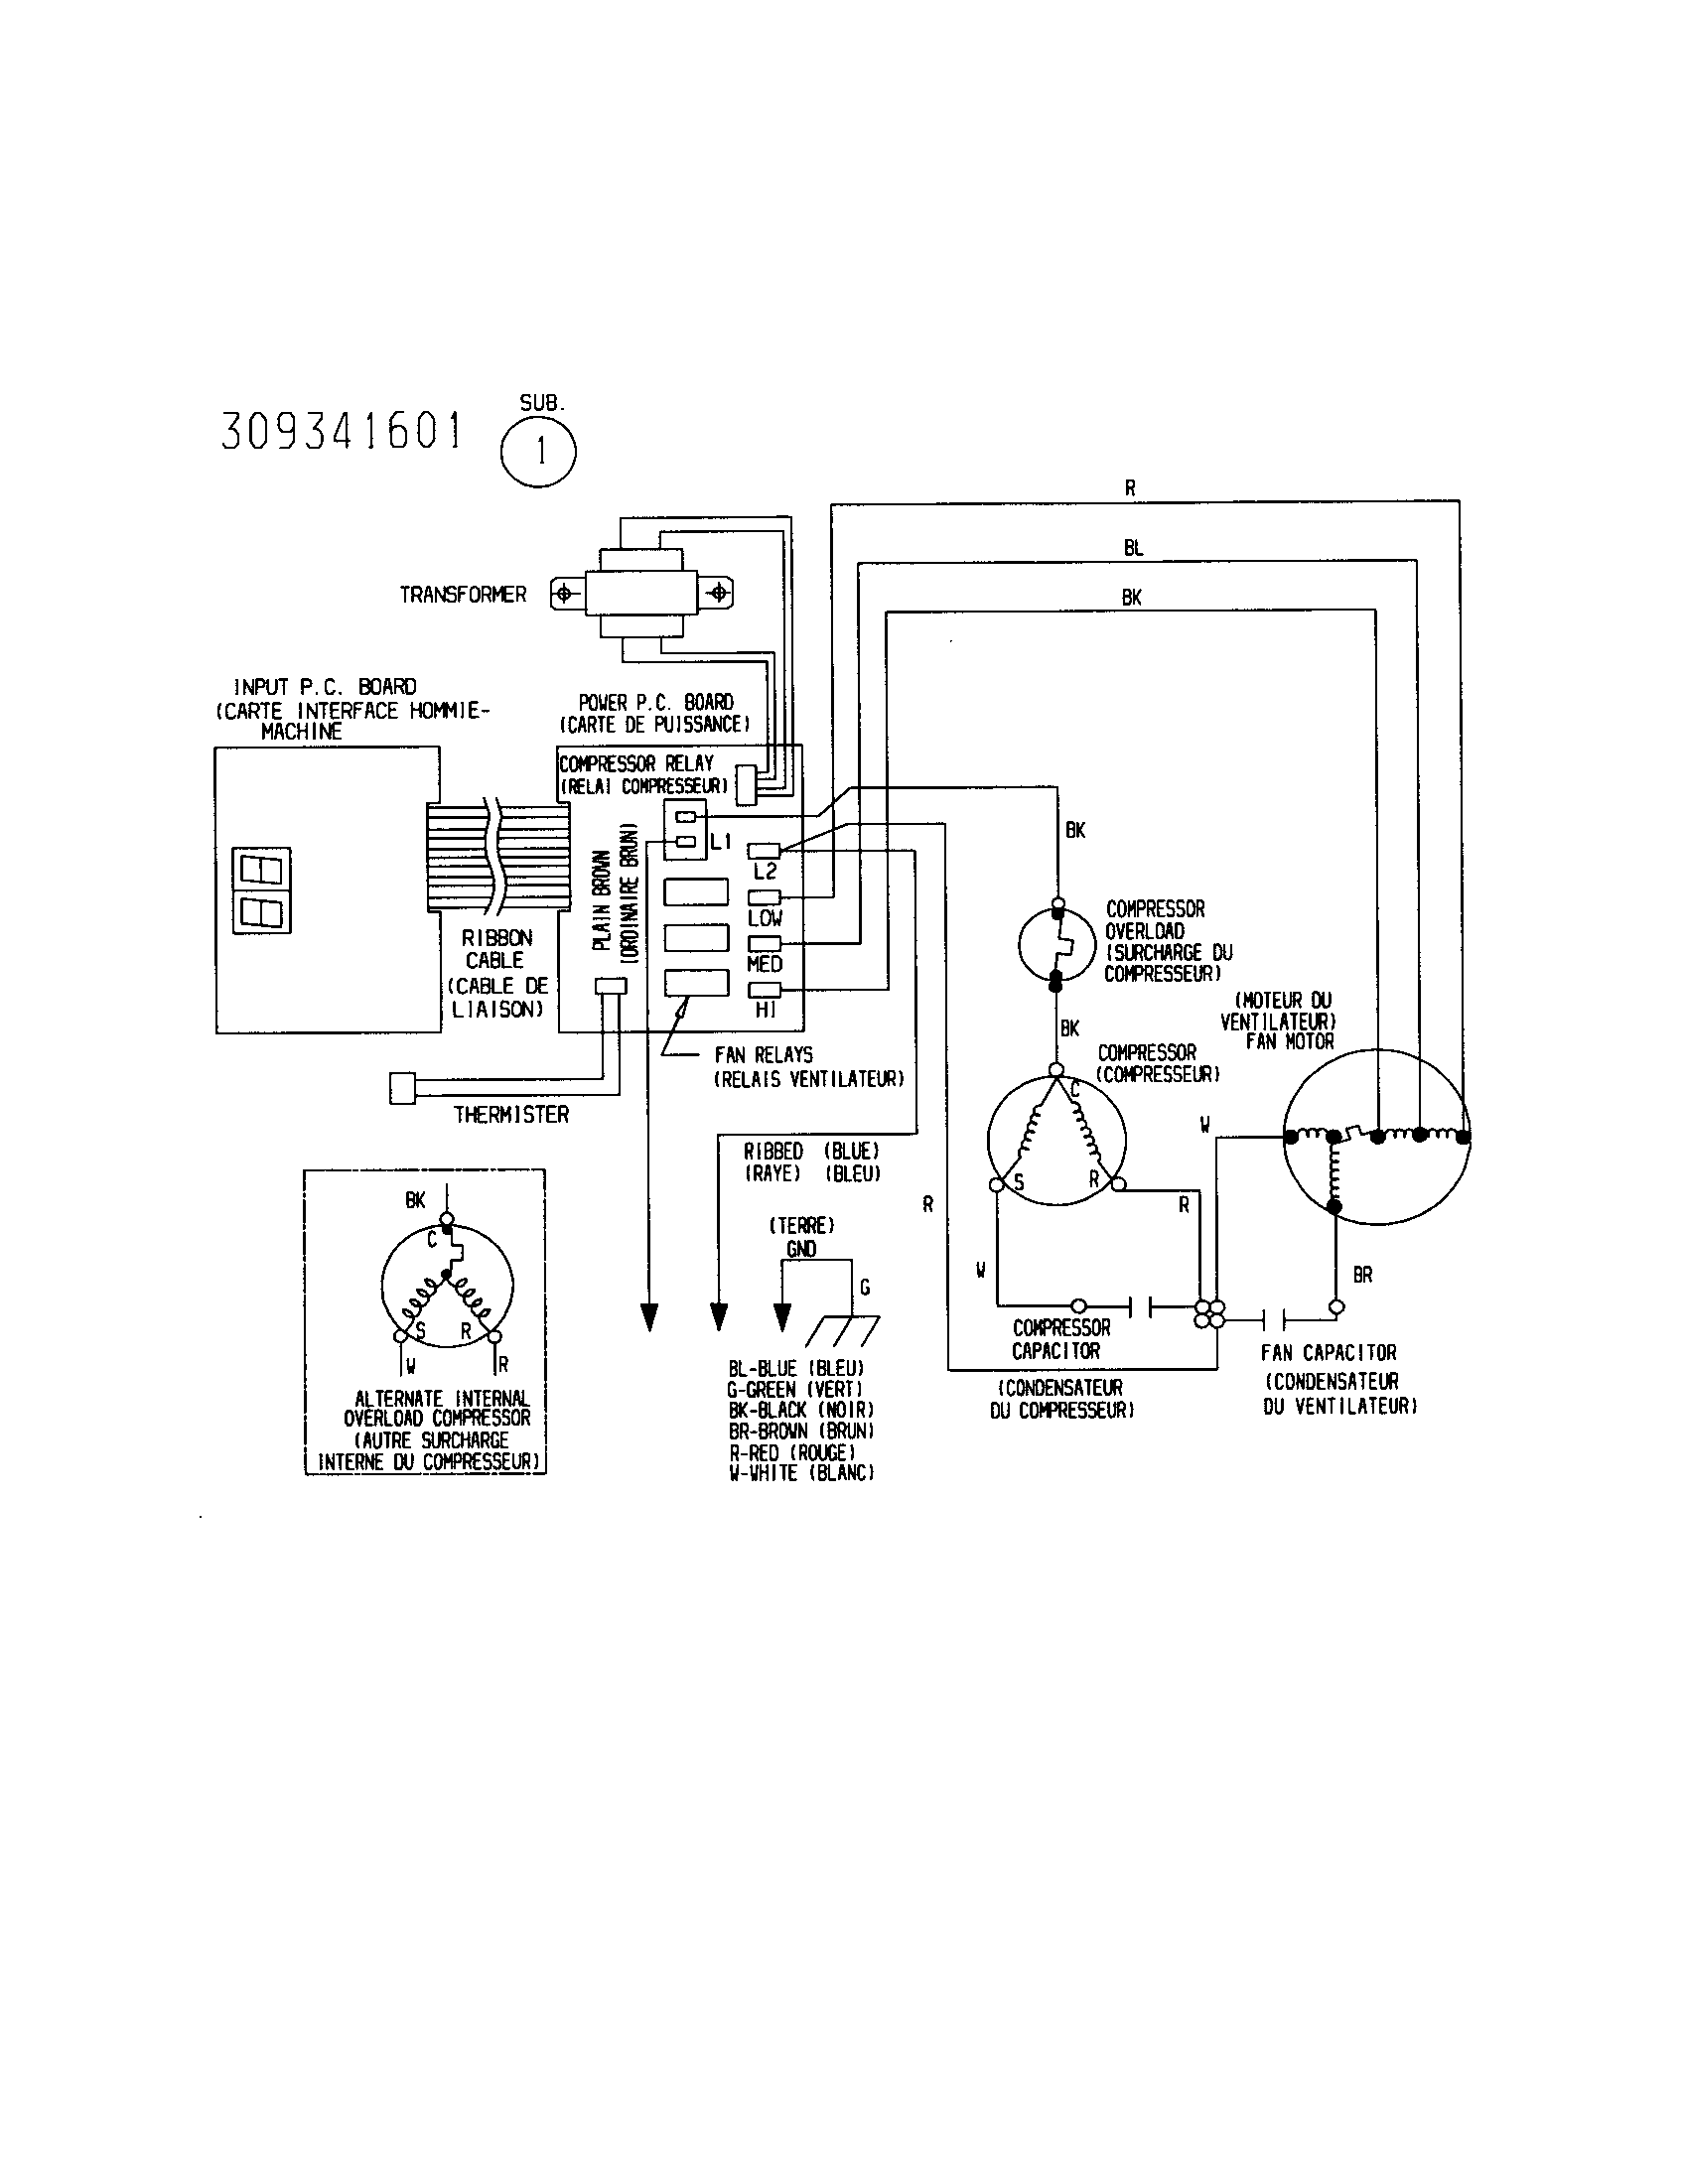 WIRING DIAGRAM Diagram & Parts List for Model 25371055000